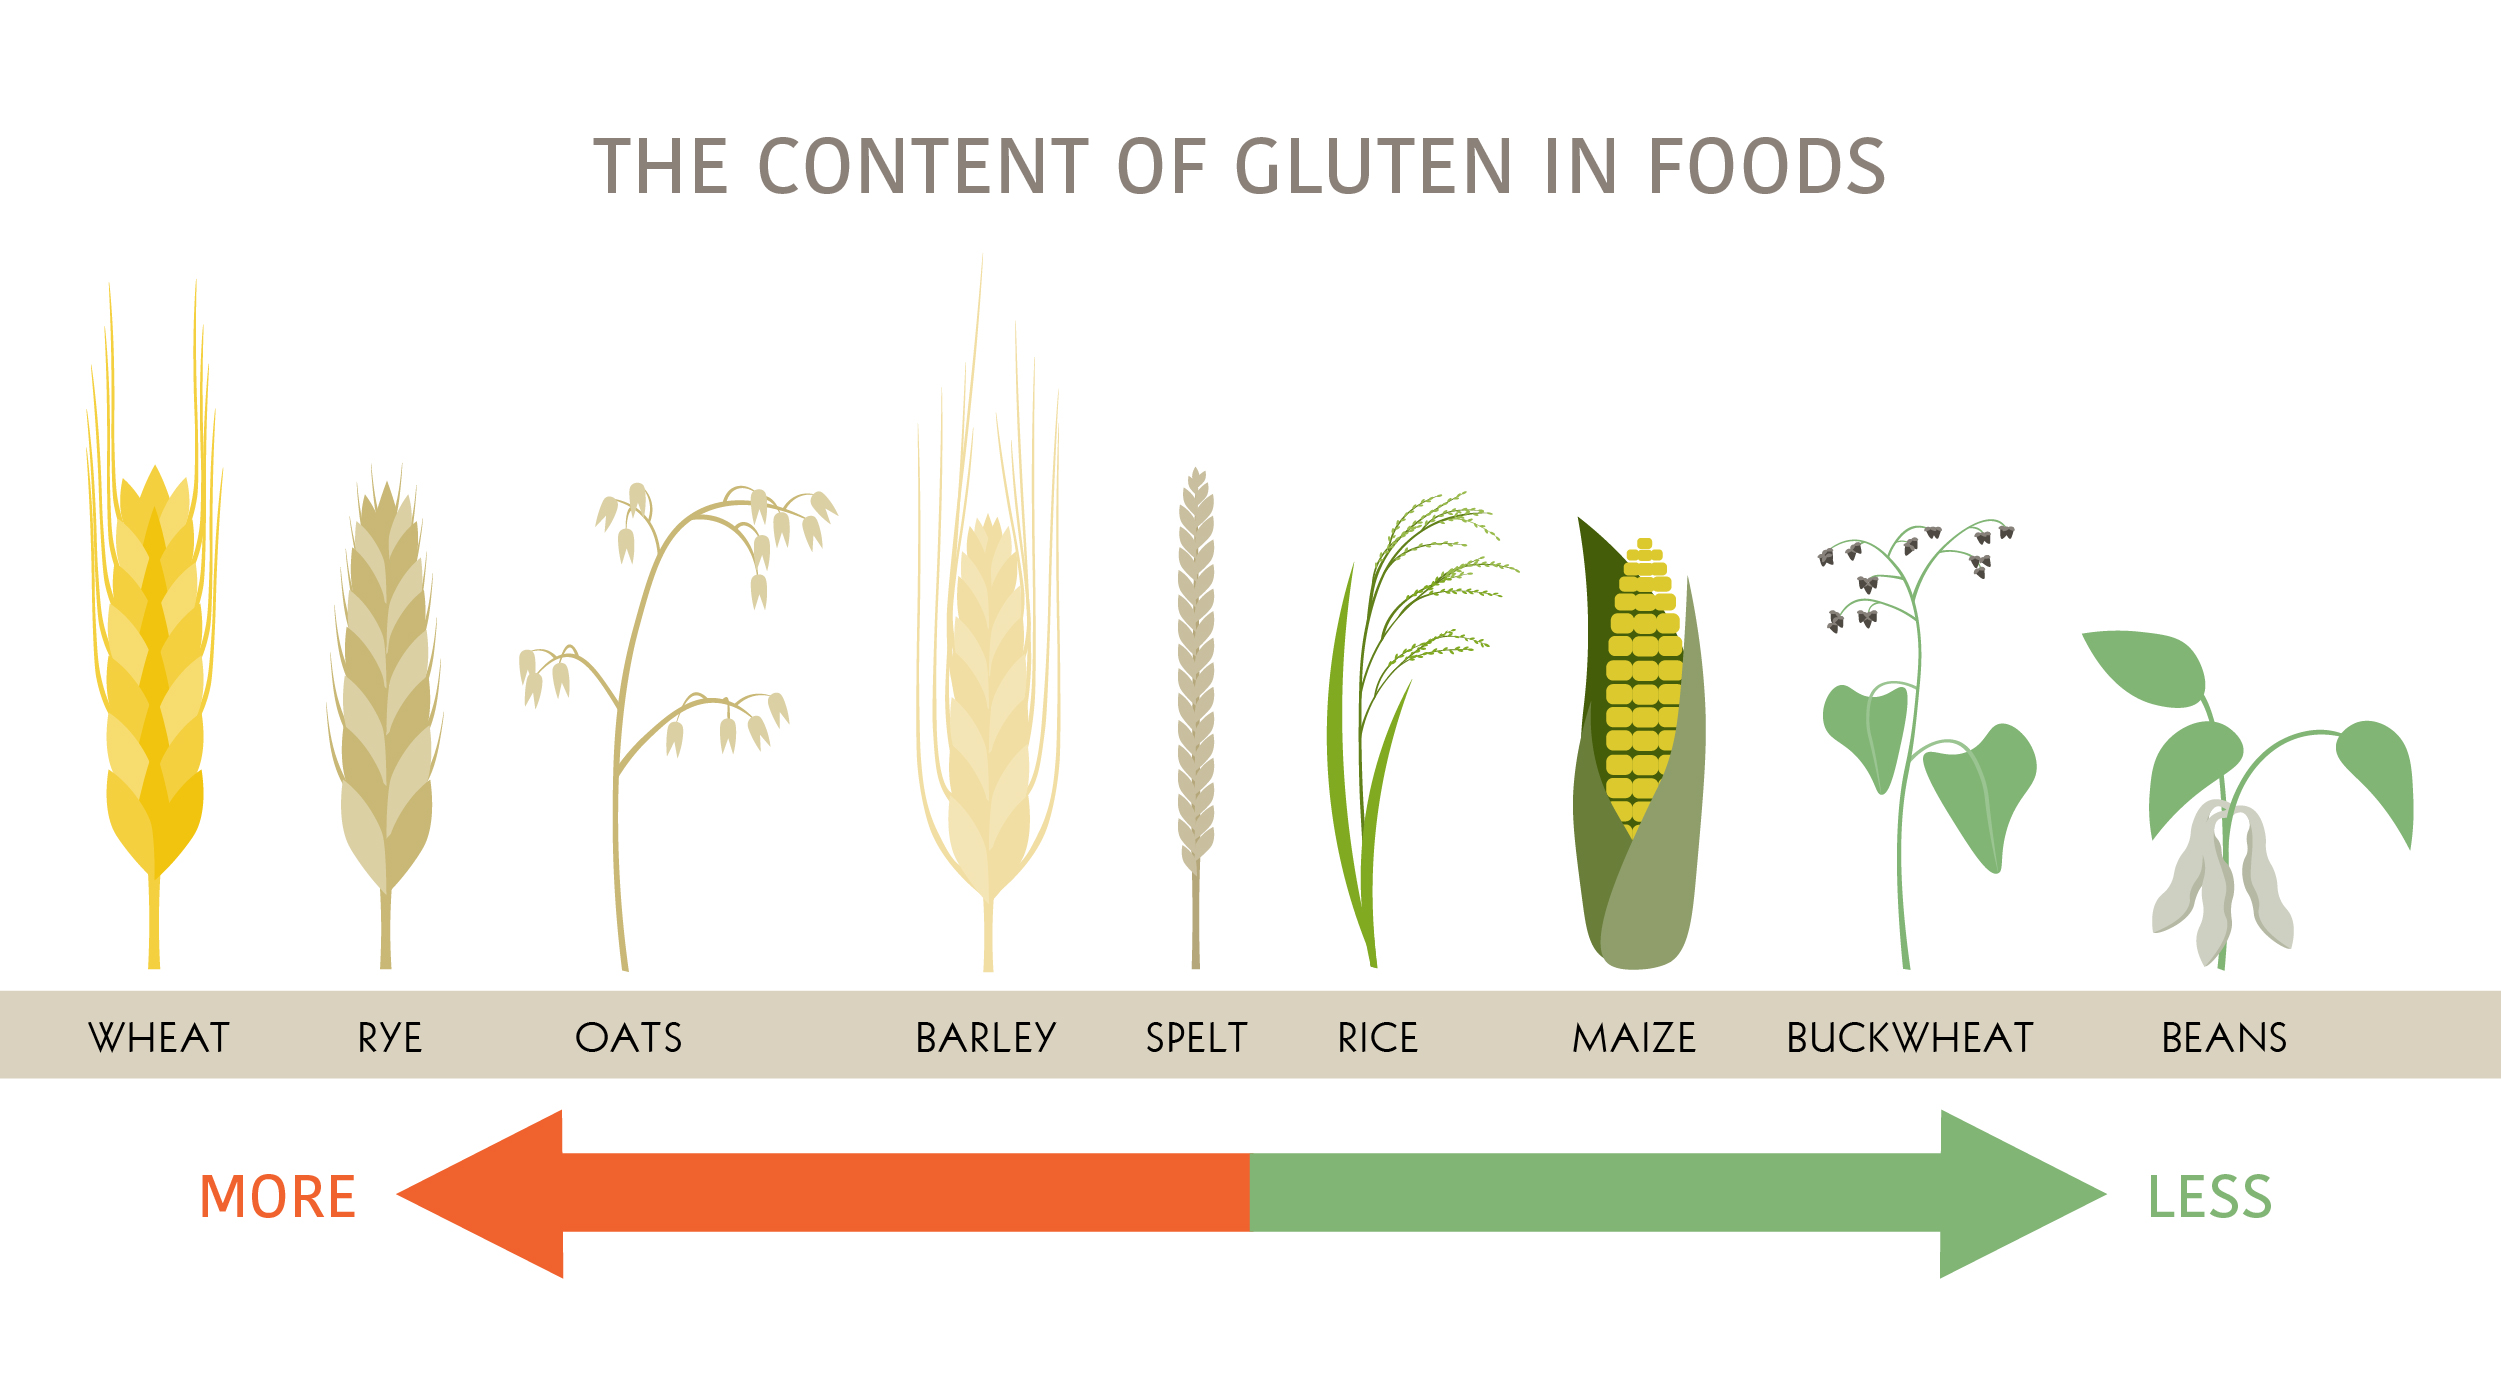 Infographic on the content of gluten in different foods